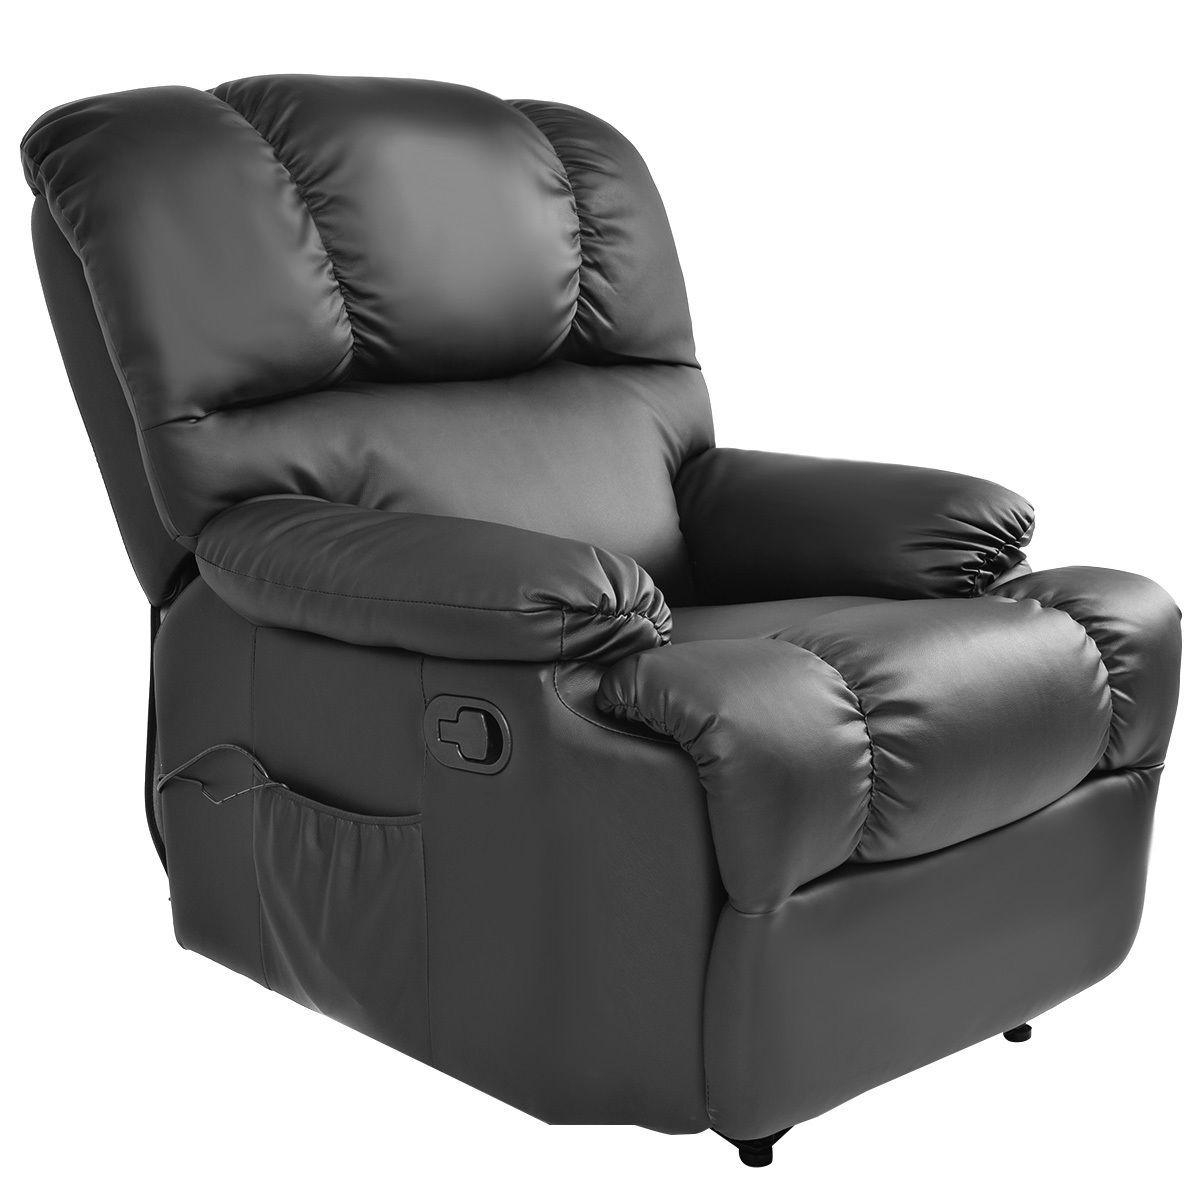 Recliner Massage Sofa Chair Deluxe Ergonomic Lounge Couch Heated W In Sofa Chair Recliner (Image 16 of 20)